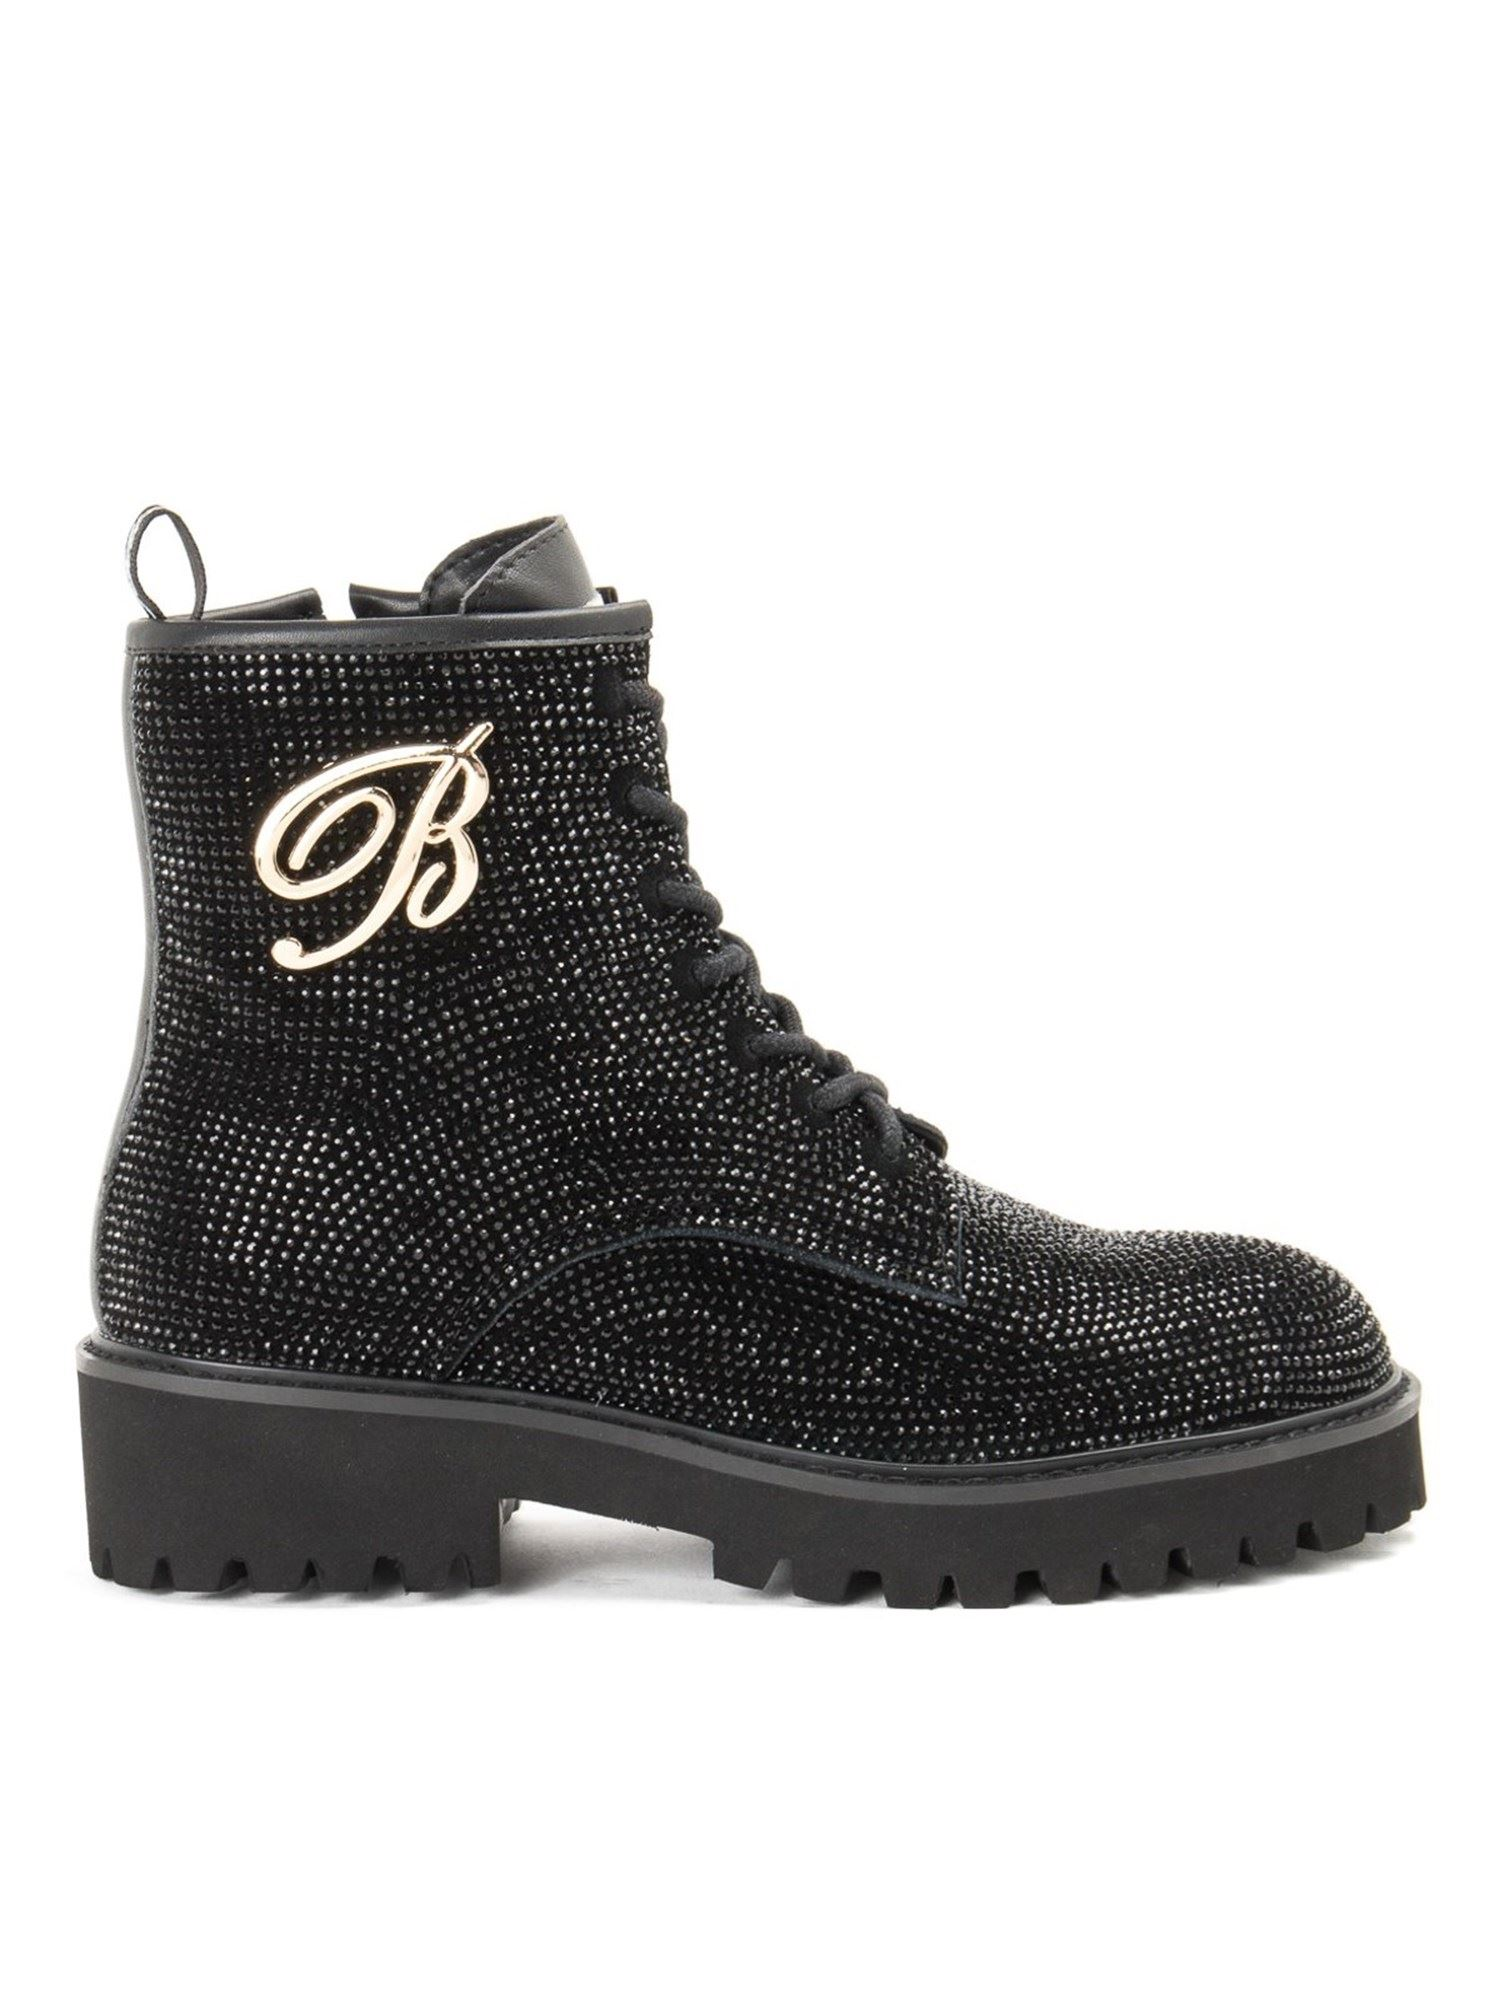 Blumarine RHINESTONE BLACK LEATHER ANKLE BOOTS